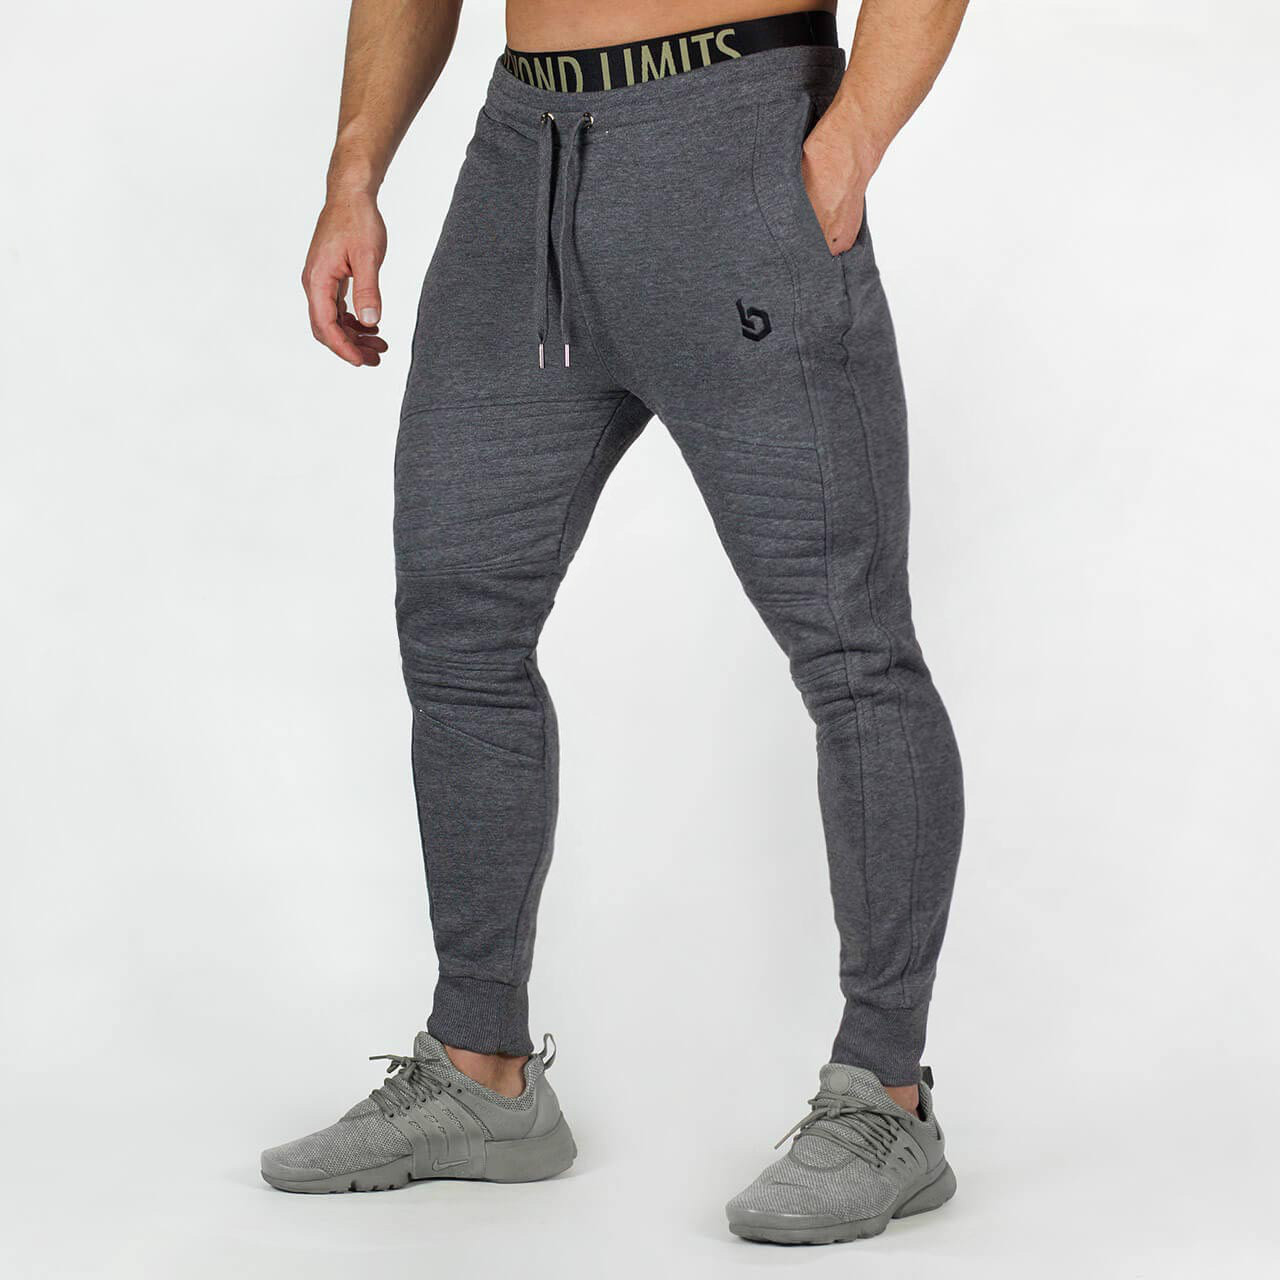 Mens Sweat Pants Brand Male Trousers Casual Pants Sweatpants Jogger Gray Casual Elastic Cotton GYMS Fitness Workout Pants